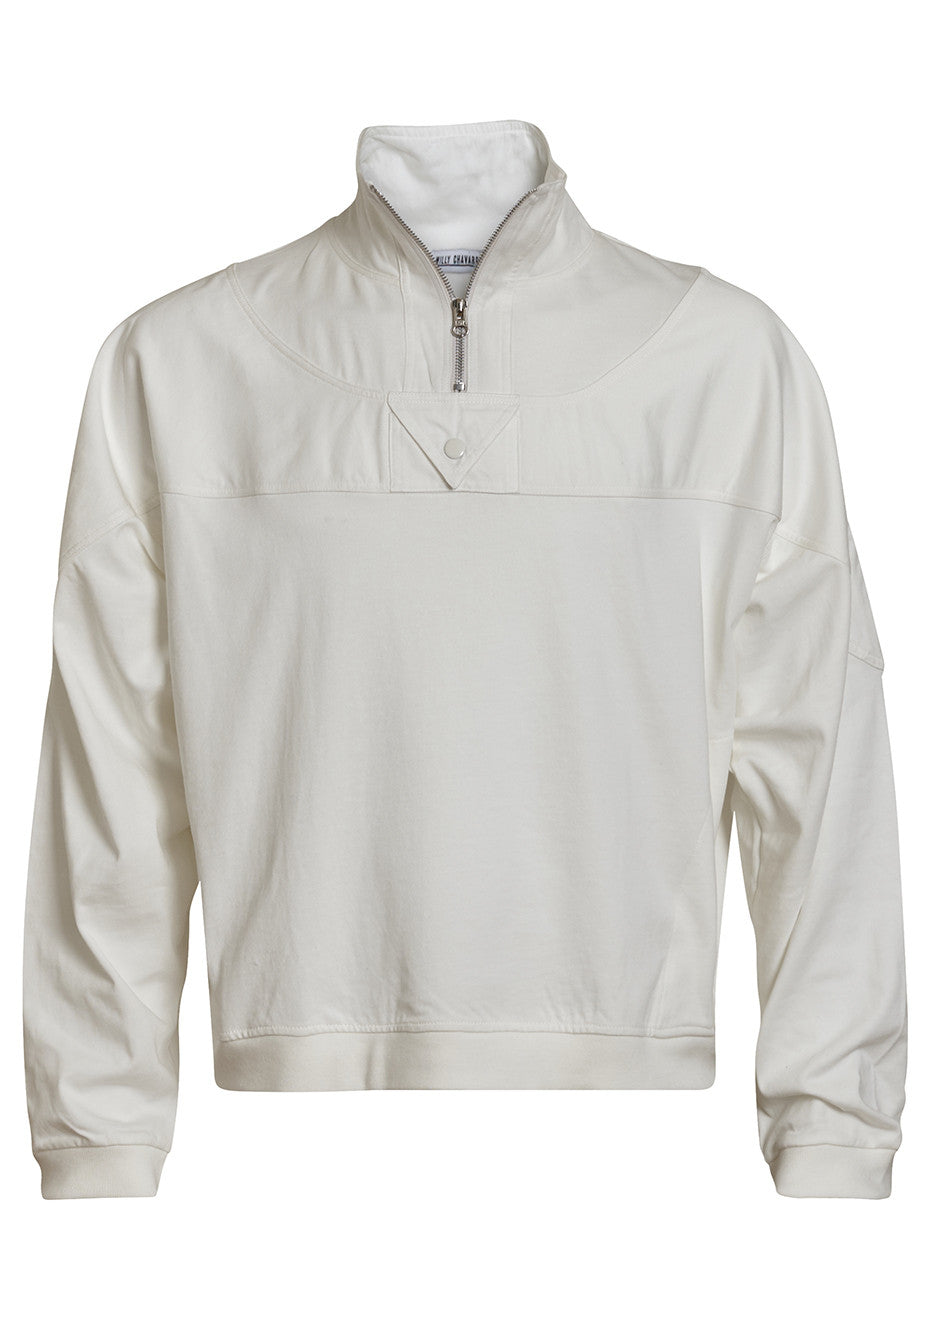 El Camino sweater in off white